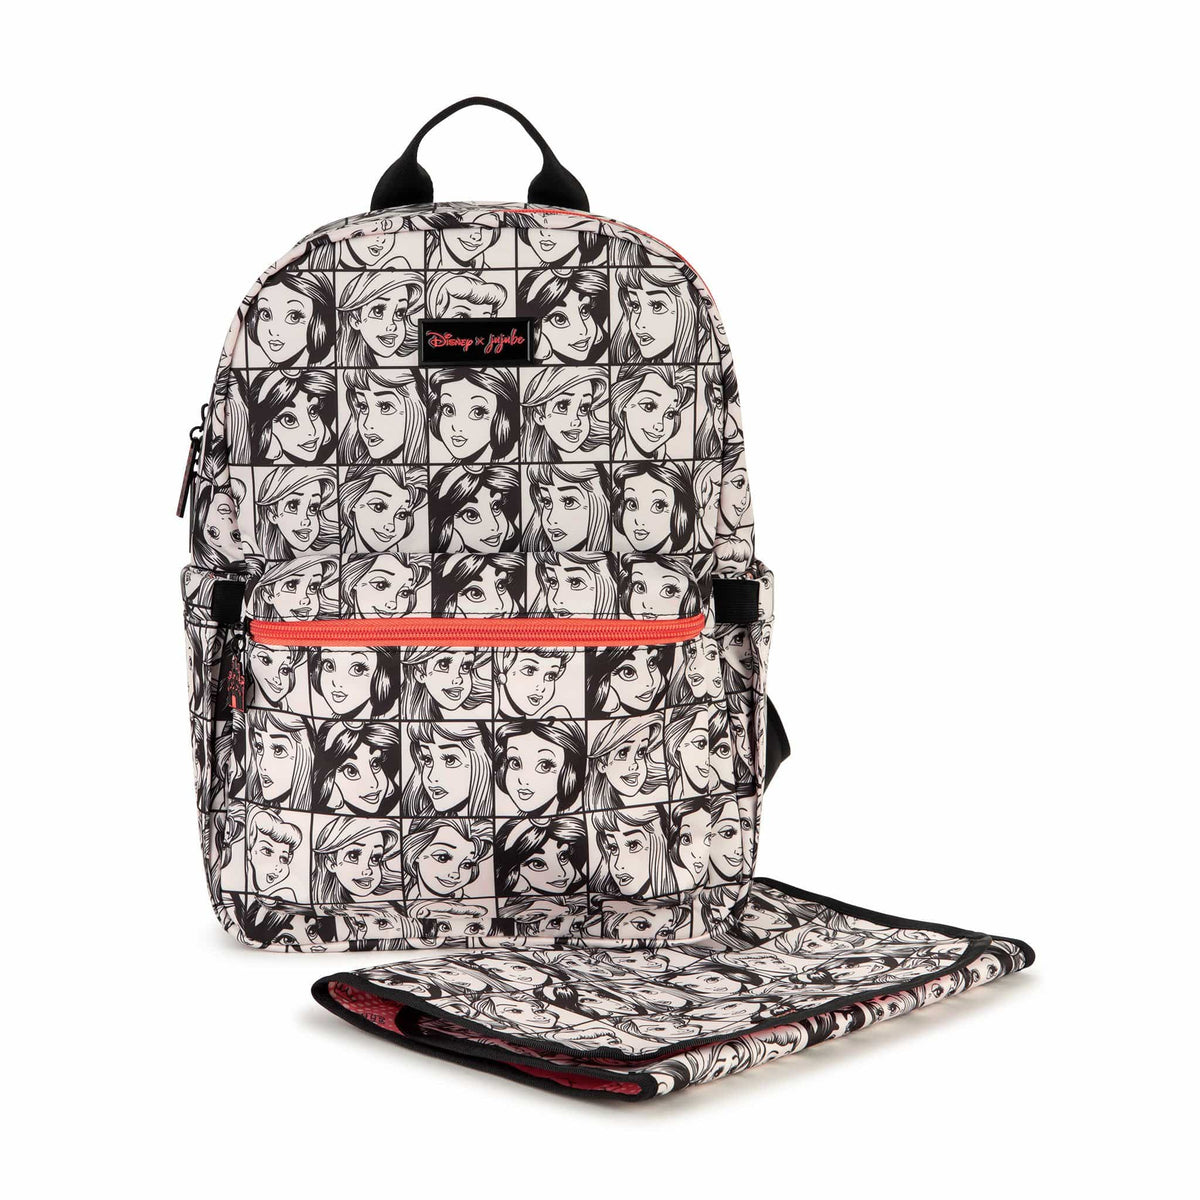 Ju-Ju-Be Midi Plus Backpack - Once Upon A Time